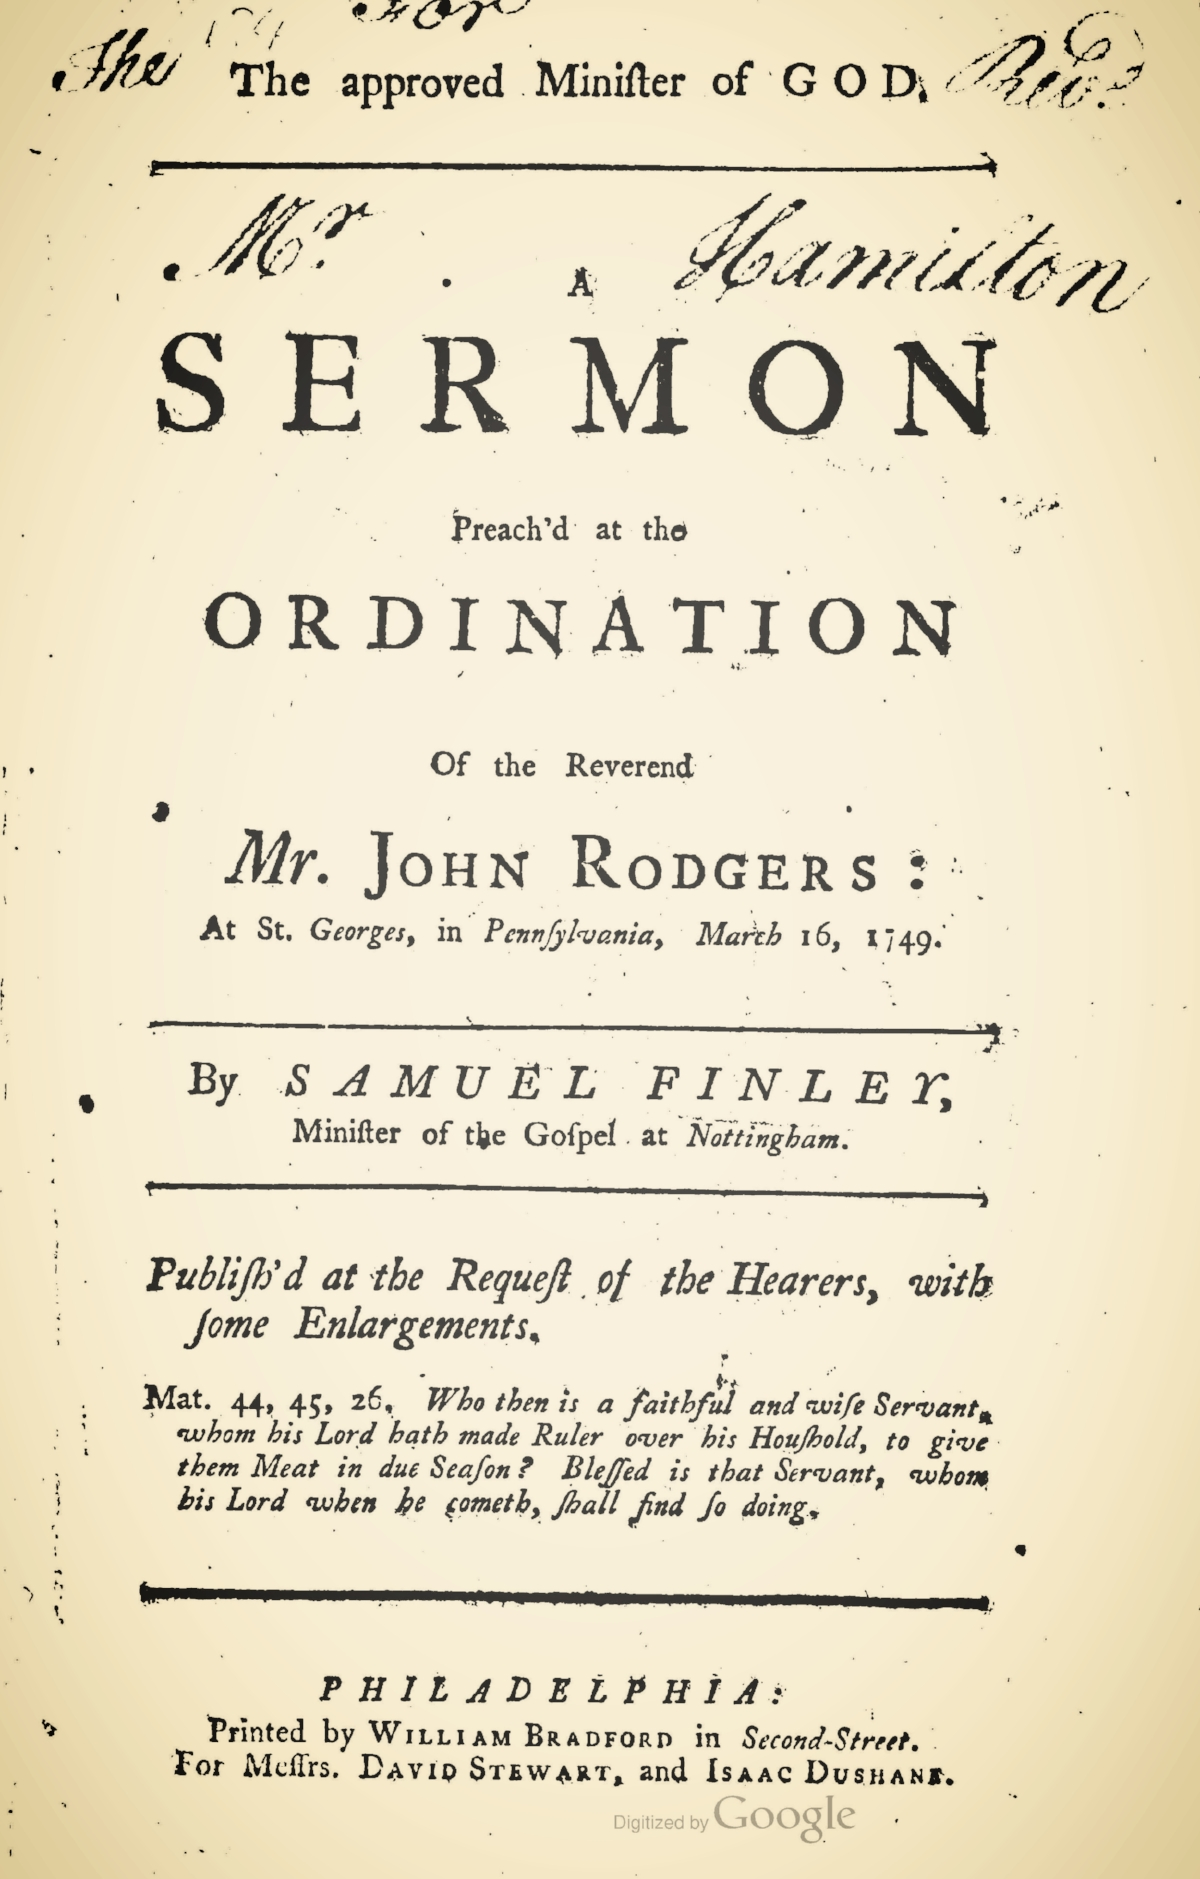 Finley, Samuel, The Approved Minister of God Title Page.jpg